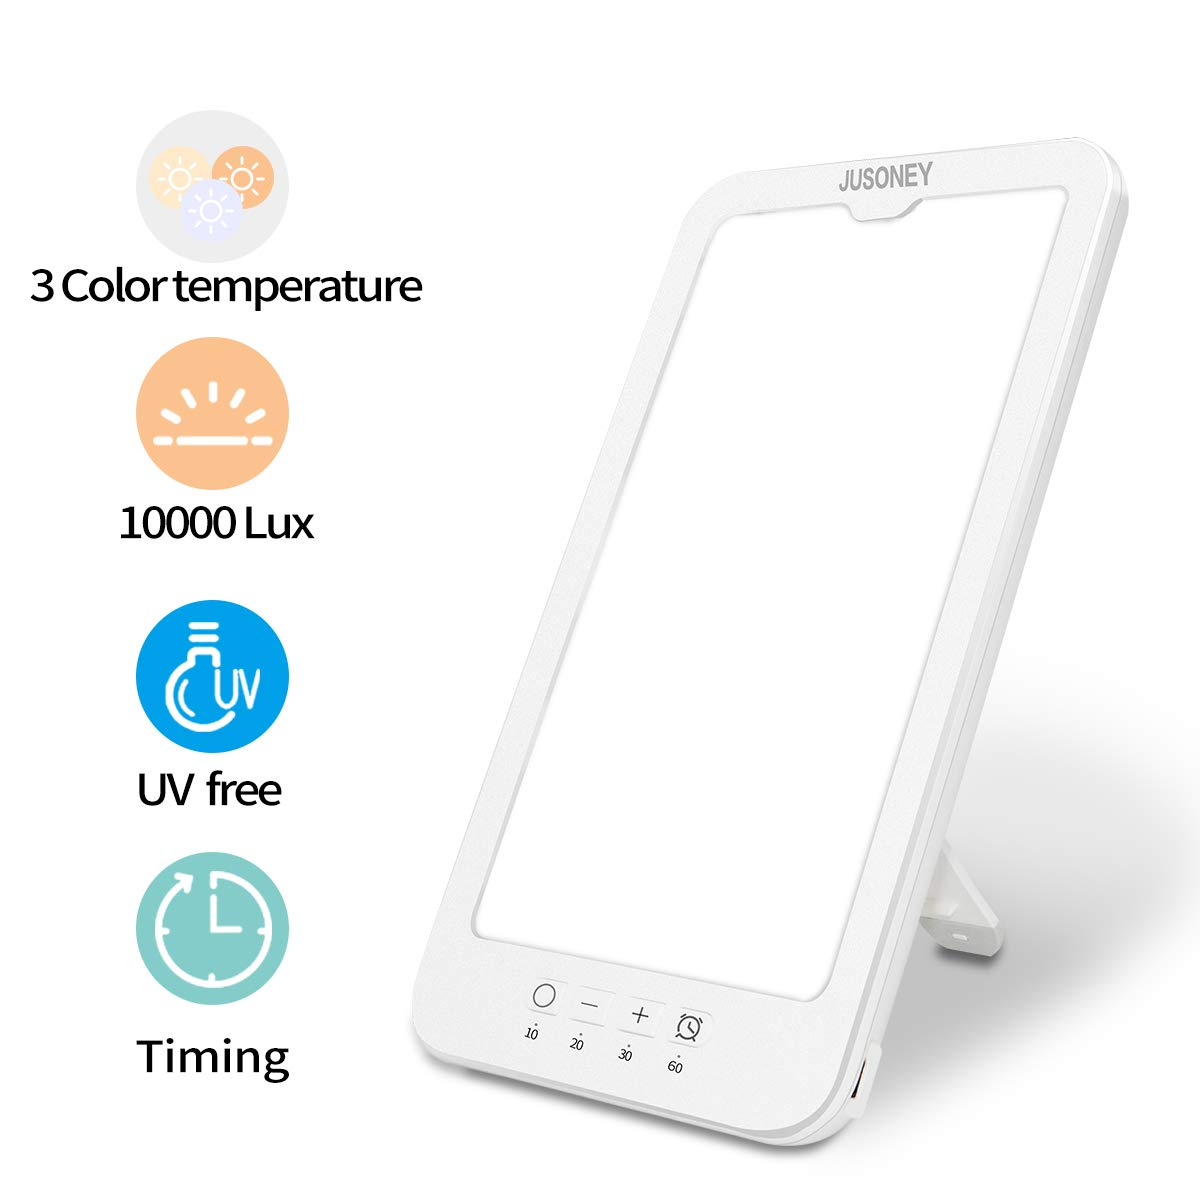 JUSONEY Light Therapy Lamp, Full Spectrum of Uv-Free 10000 Lux Brightness LED Light, Sun Light with 5 Levels of Brightness and Three Different Color, Suitable for Office, Sleep, Winter